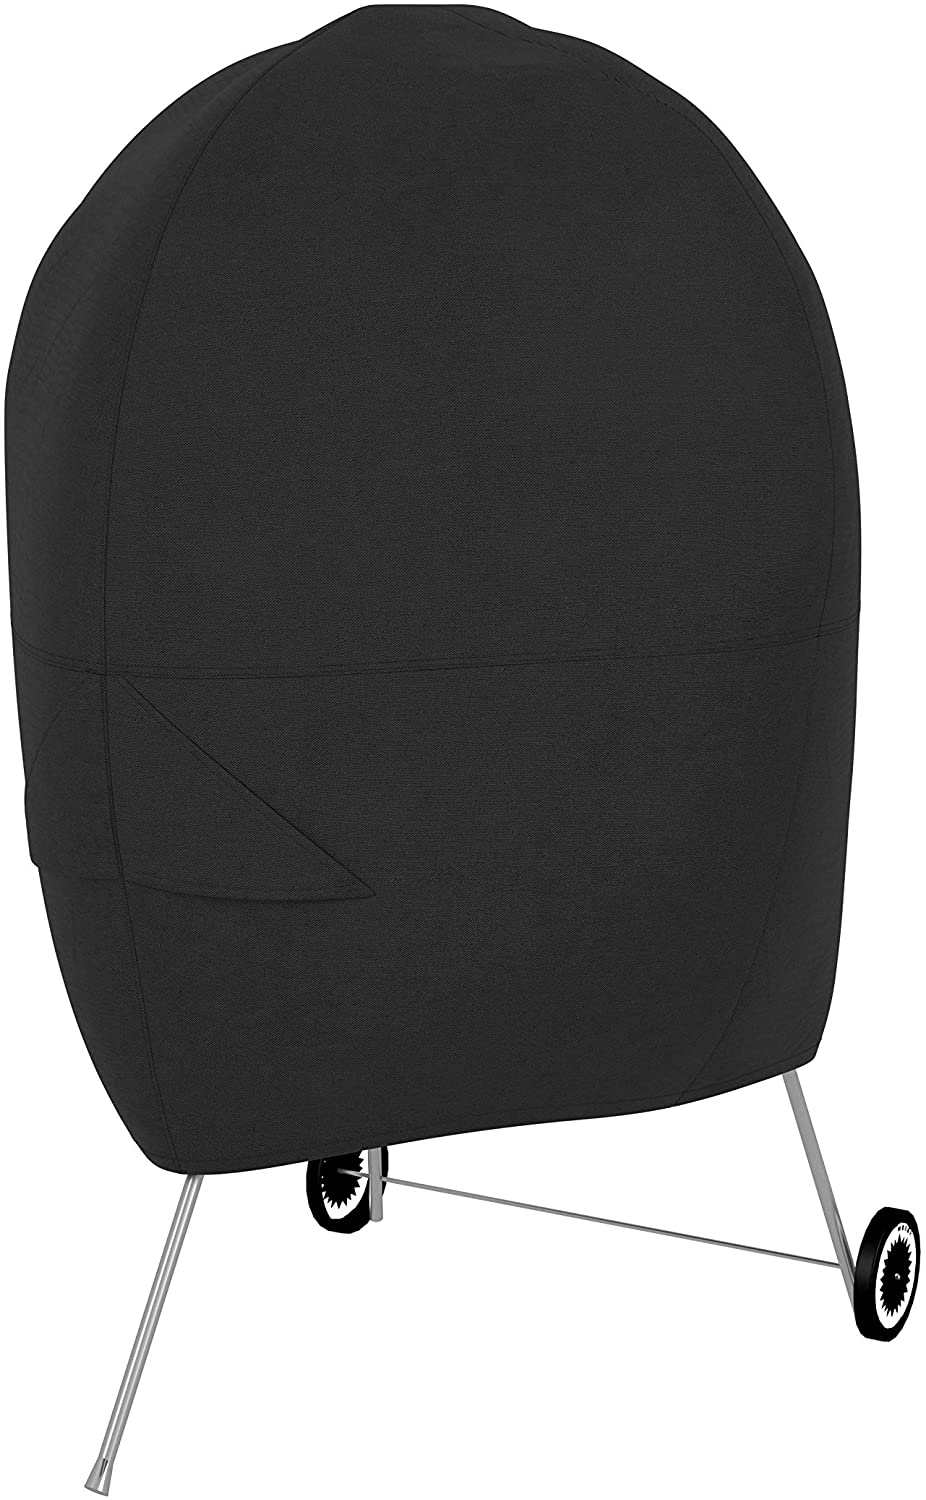 The best grill cover for kettle-shaped grills- AmazonBasics Kettle